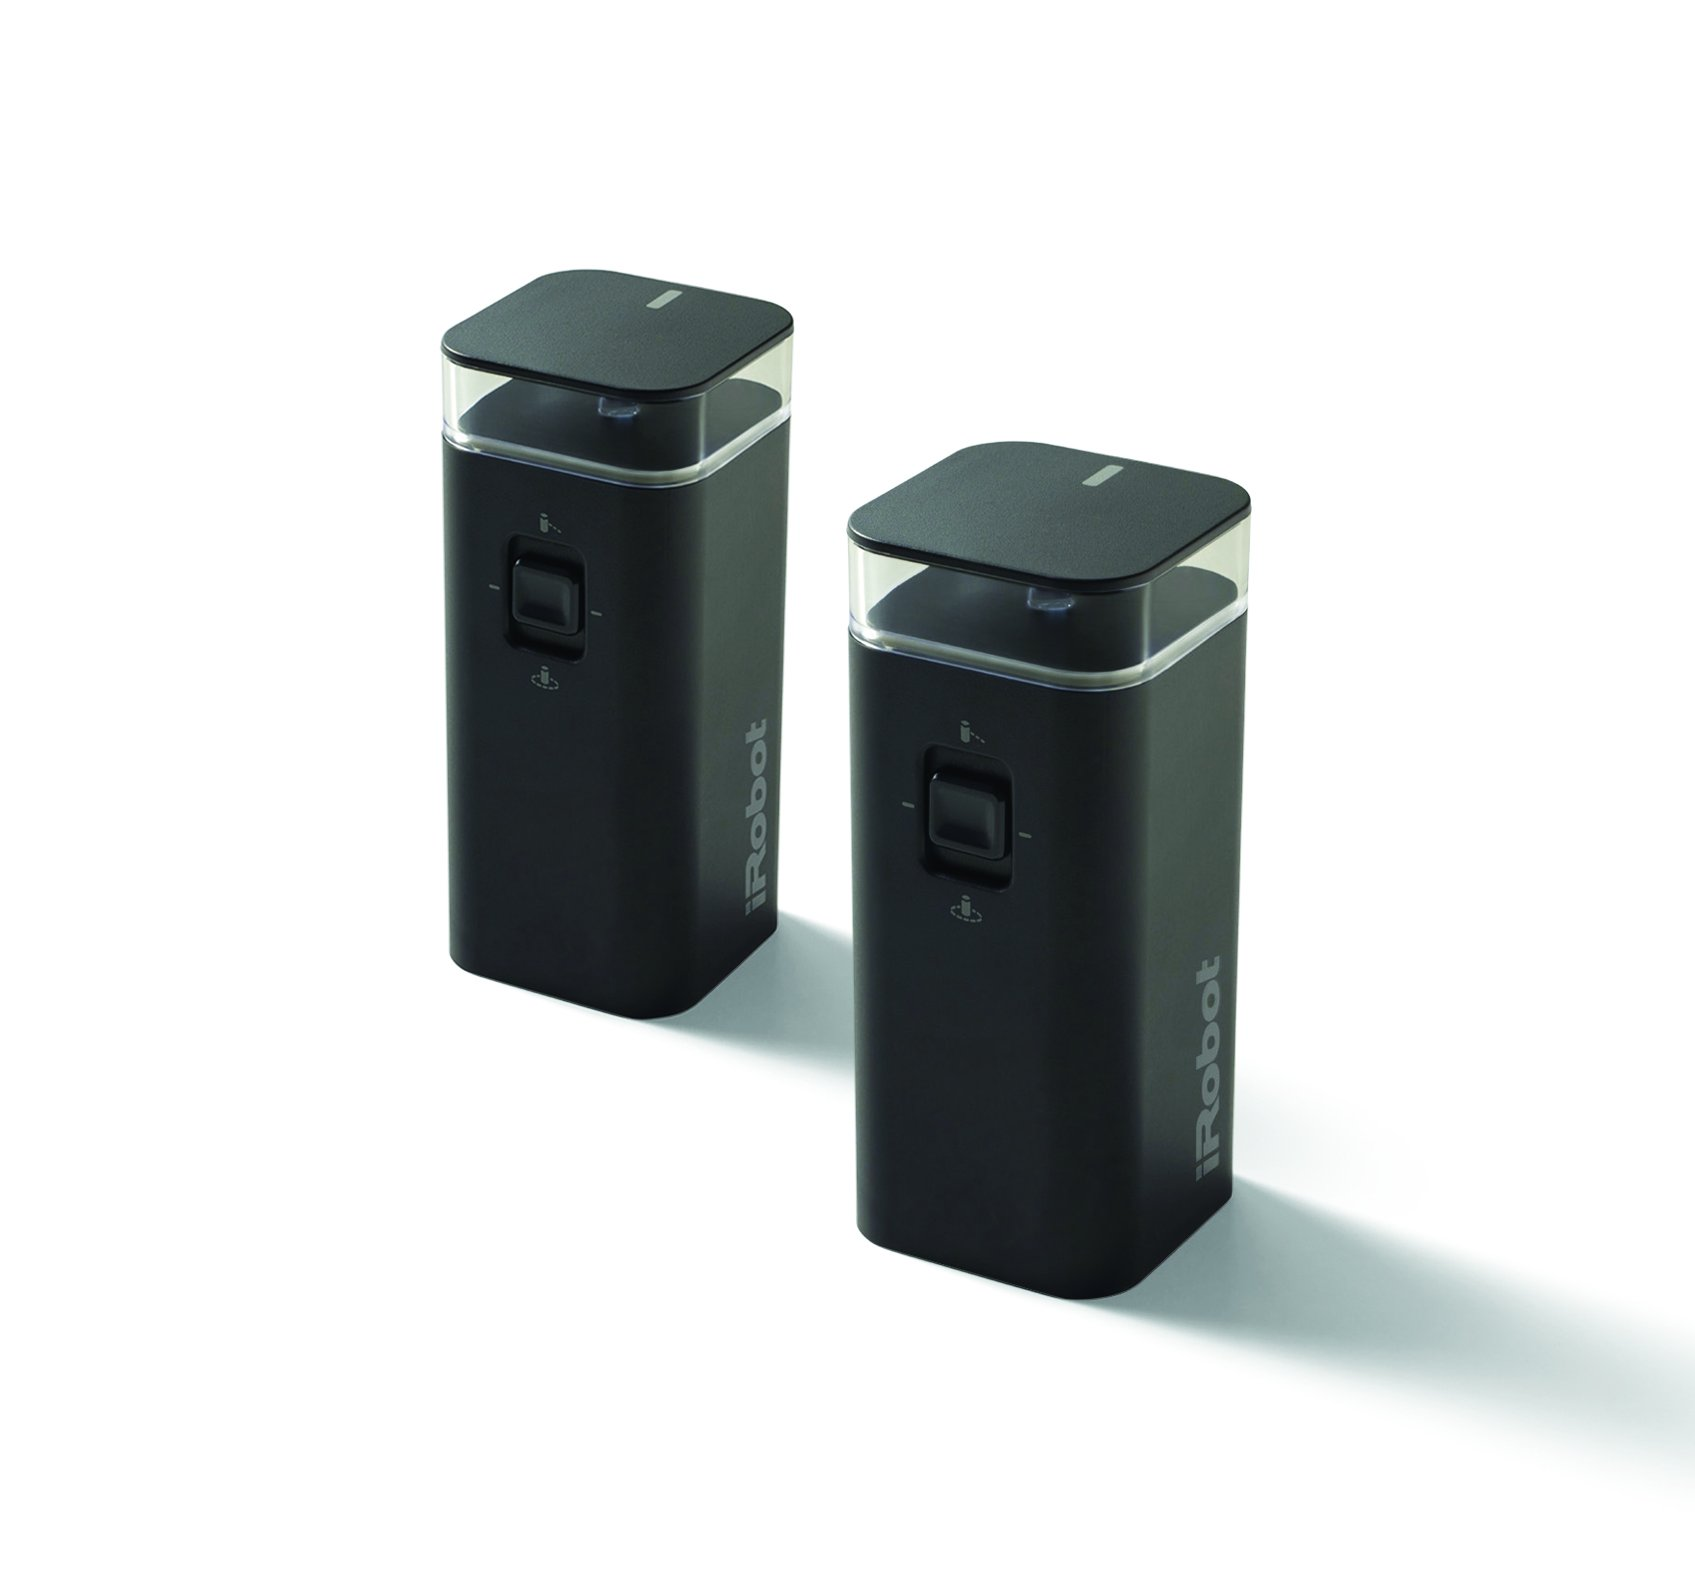 iRobot 4473043 Dual Mode Virtual Wall Barrier Compatible with Roomba 500/600/700/800/900 Series (2 Pack)